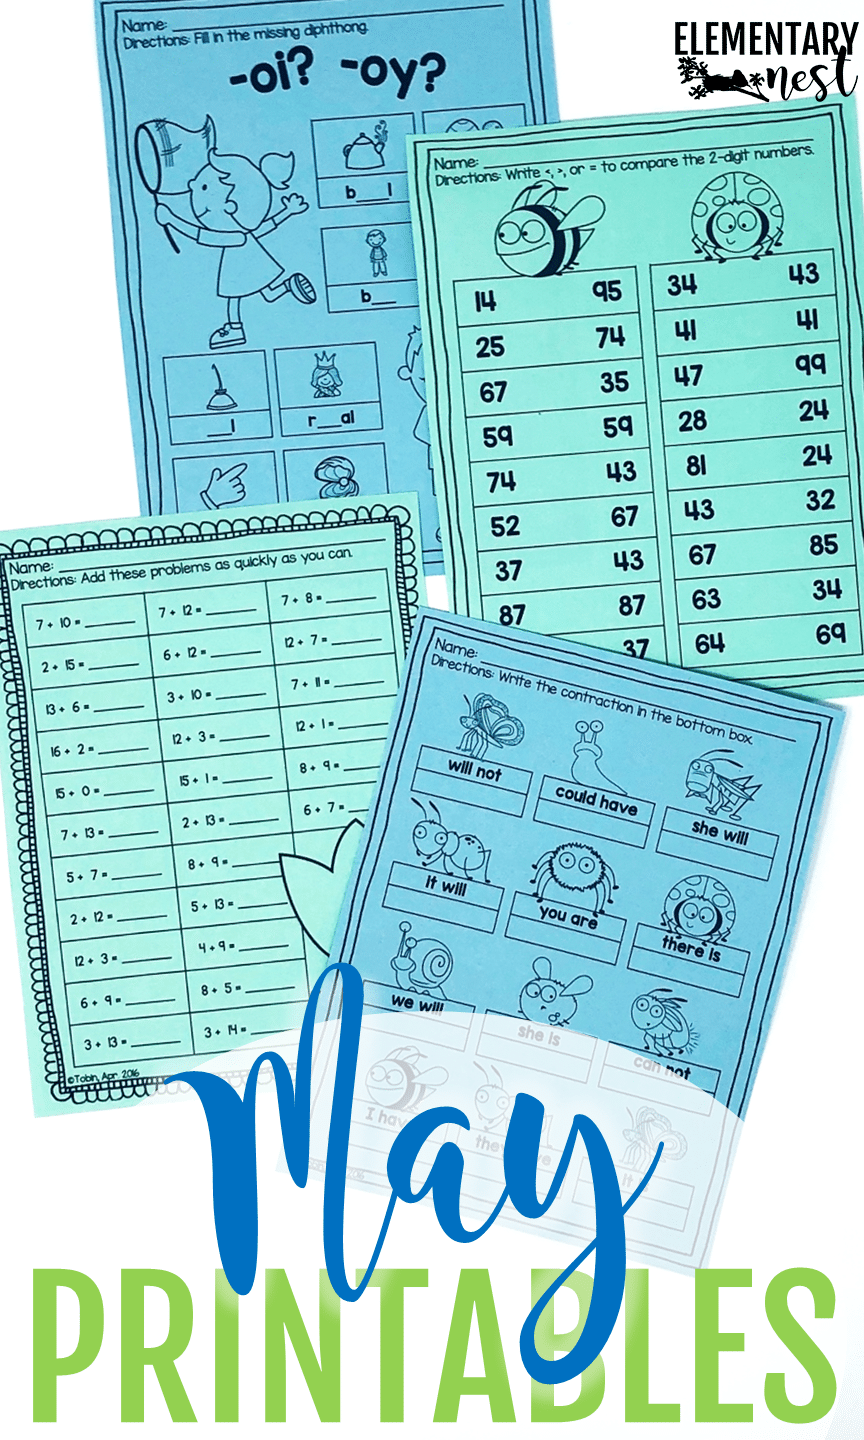 May worksheets to help students practice their reading skills and math skills, while learning about May themes.